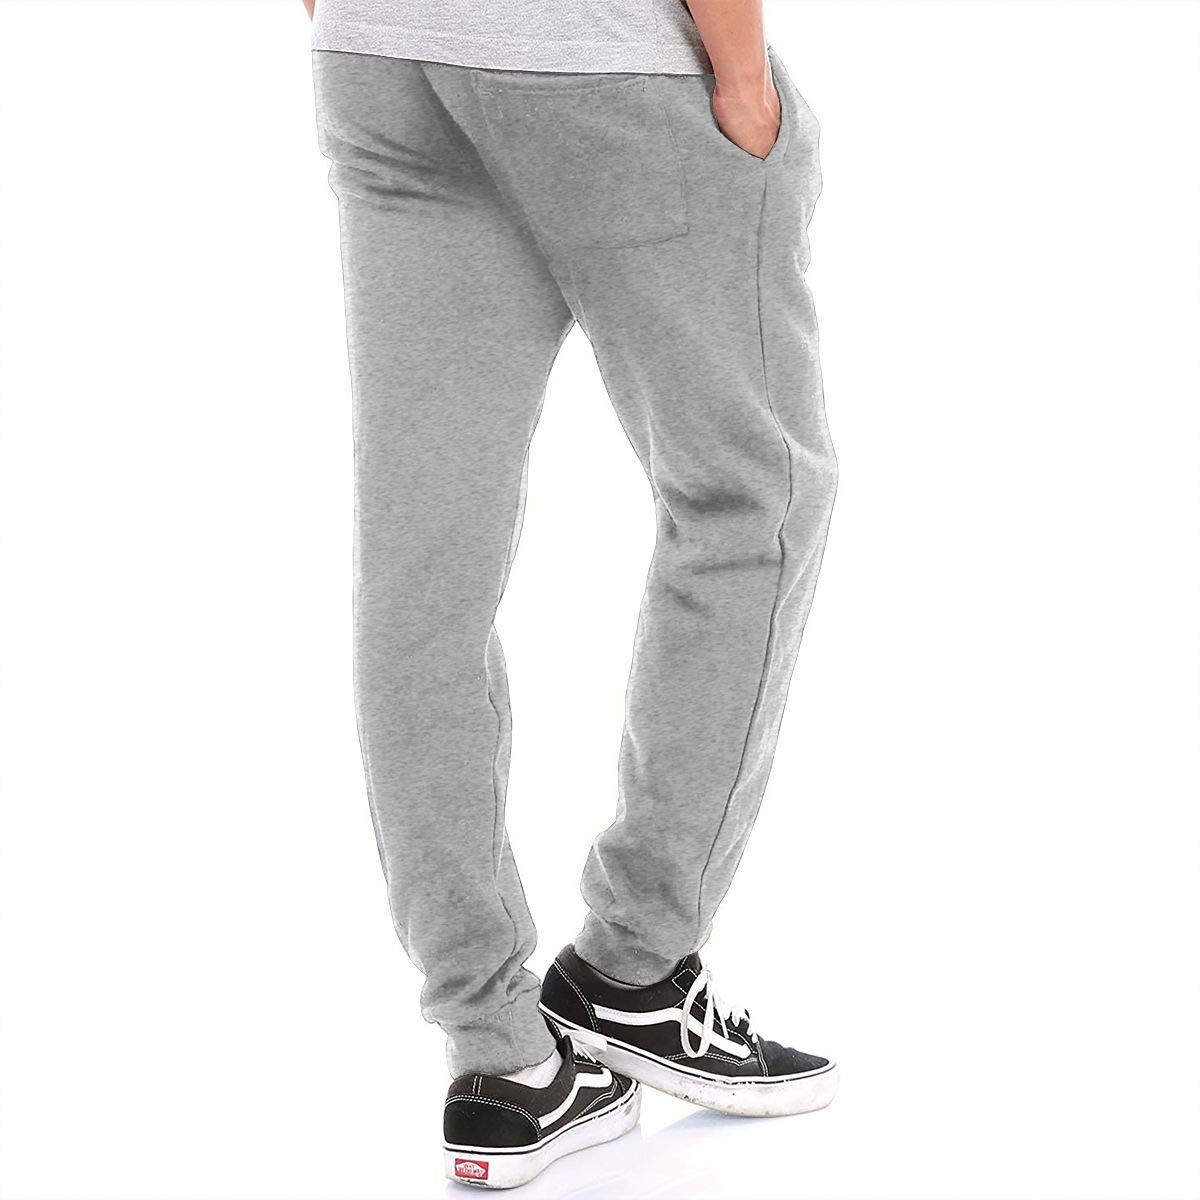 Dolphin Casual Joggers Lounge Pajama Gym Workout Pants Casual Long Pants for Men